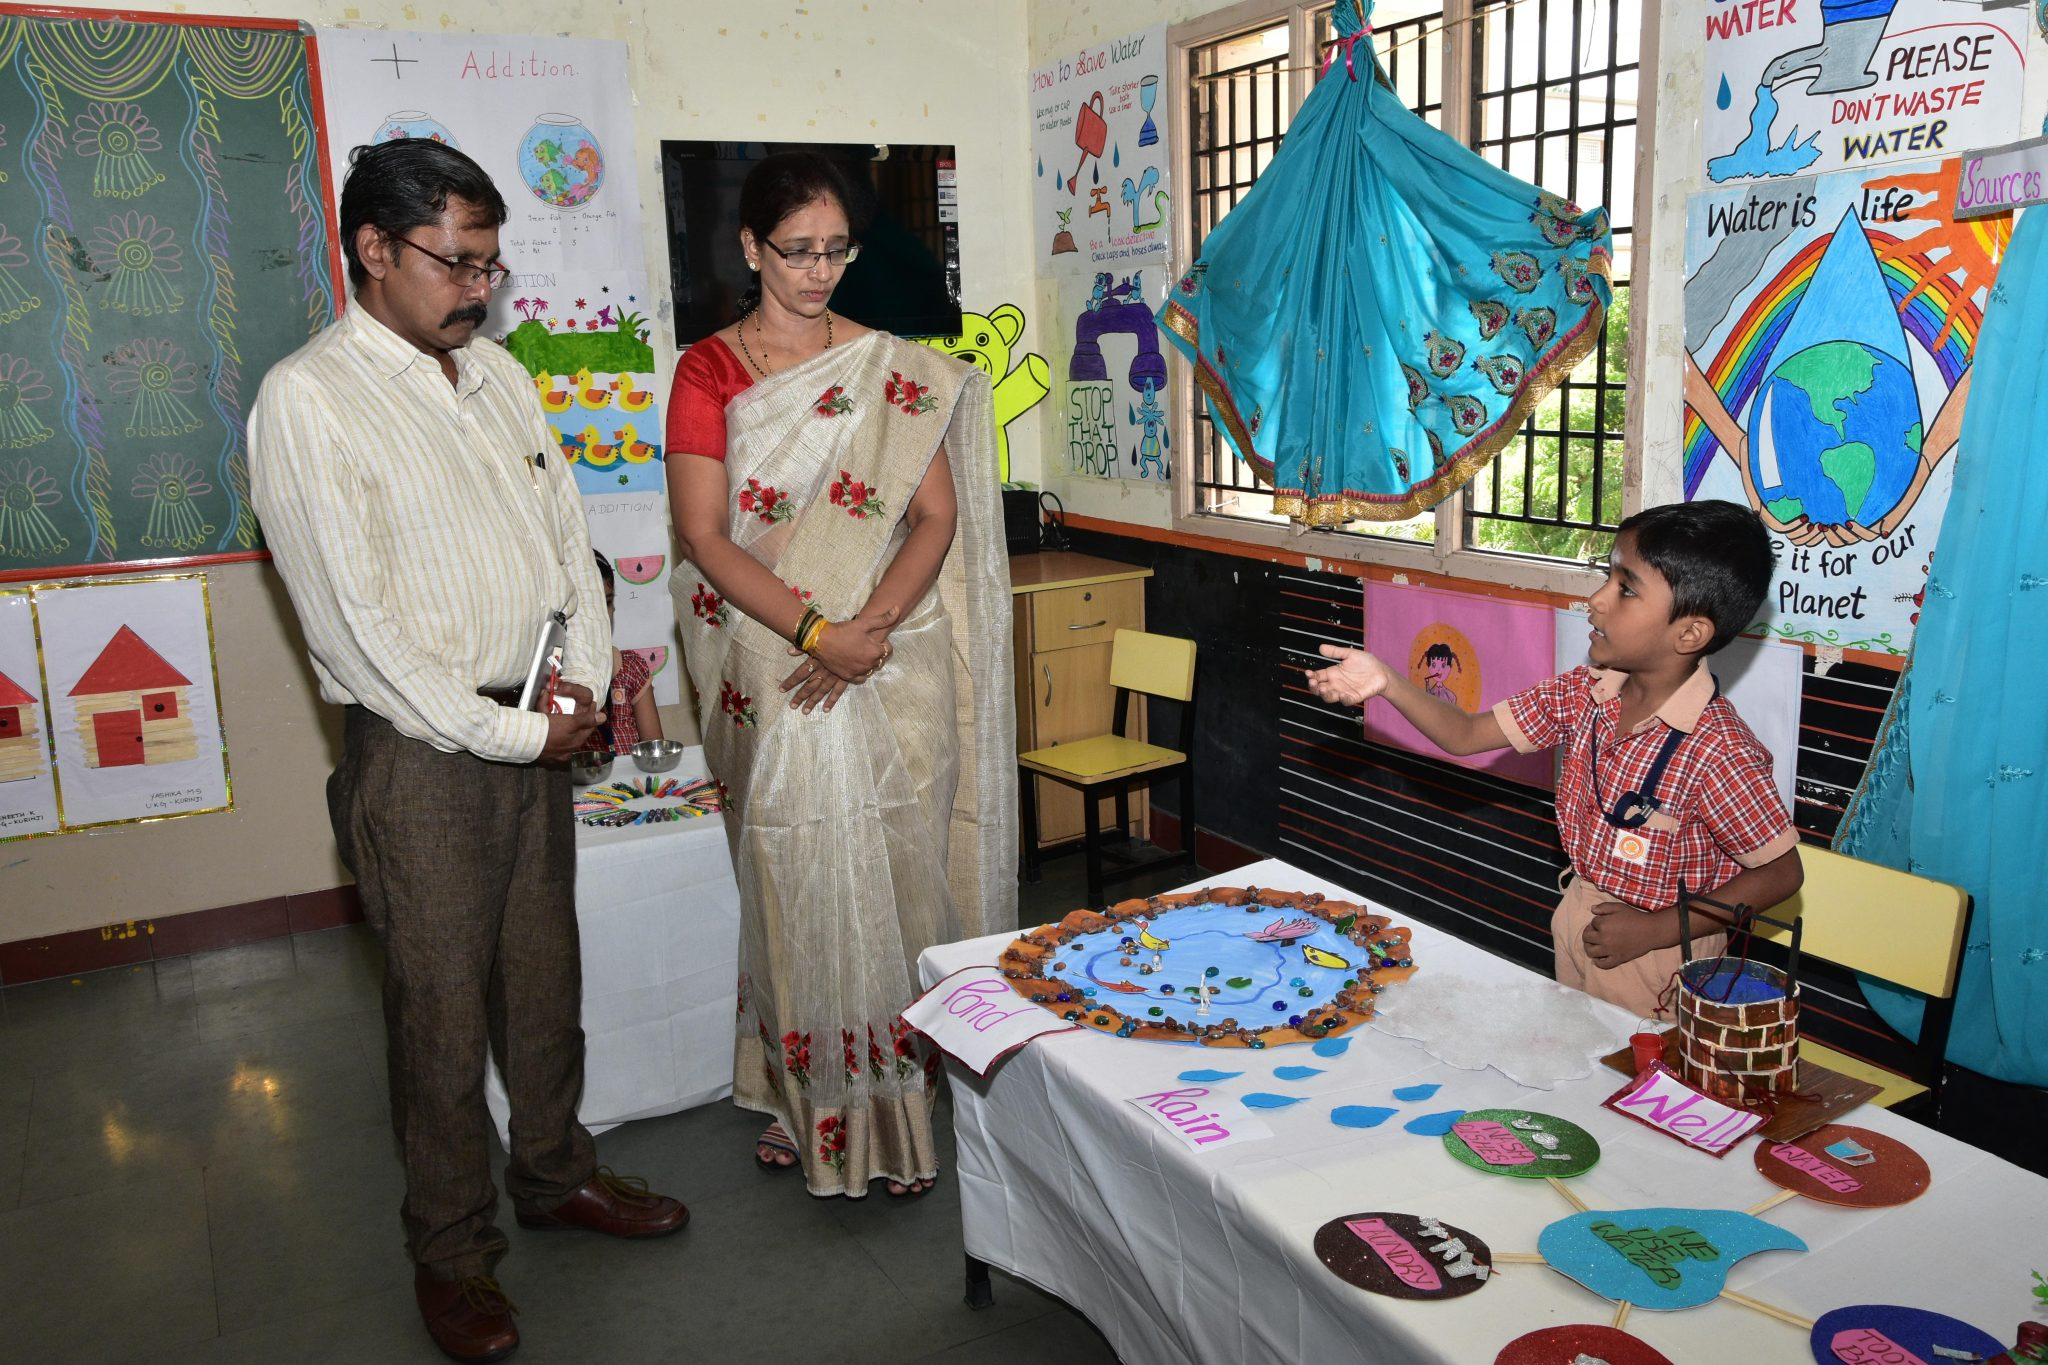 'Water is life'-elaborates on conservation of water...